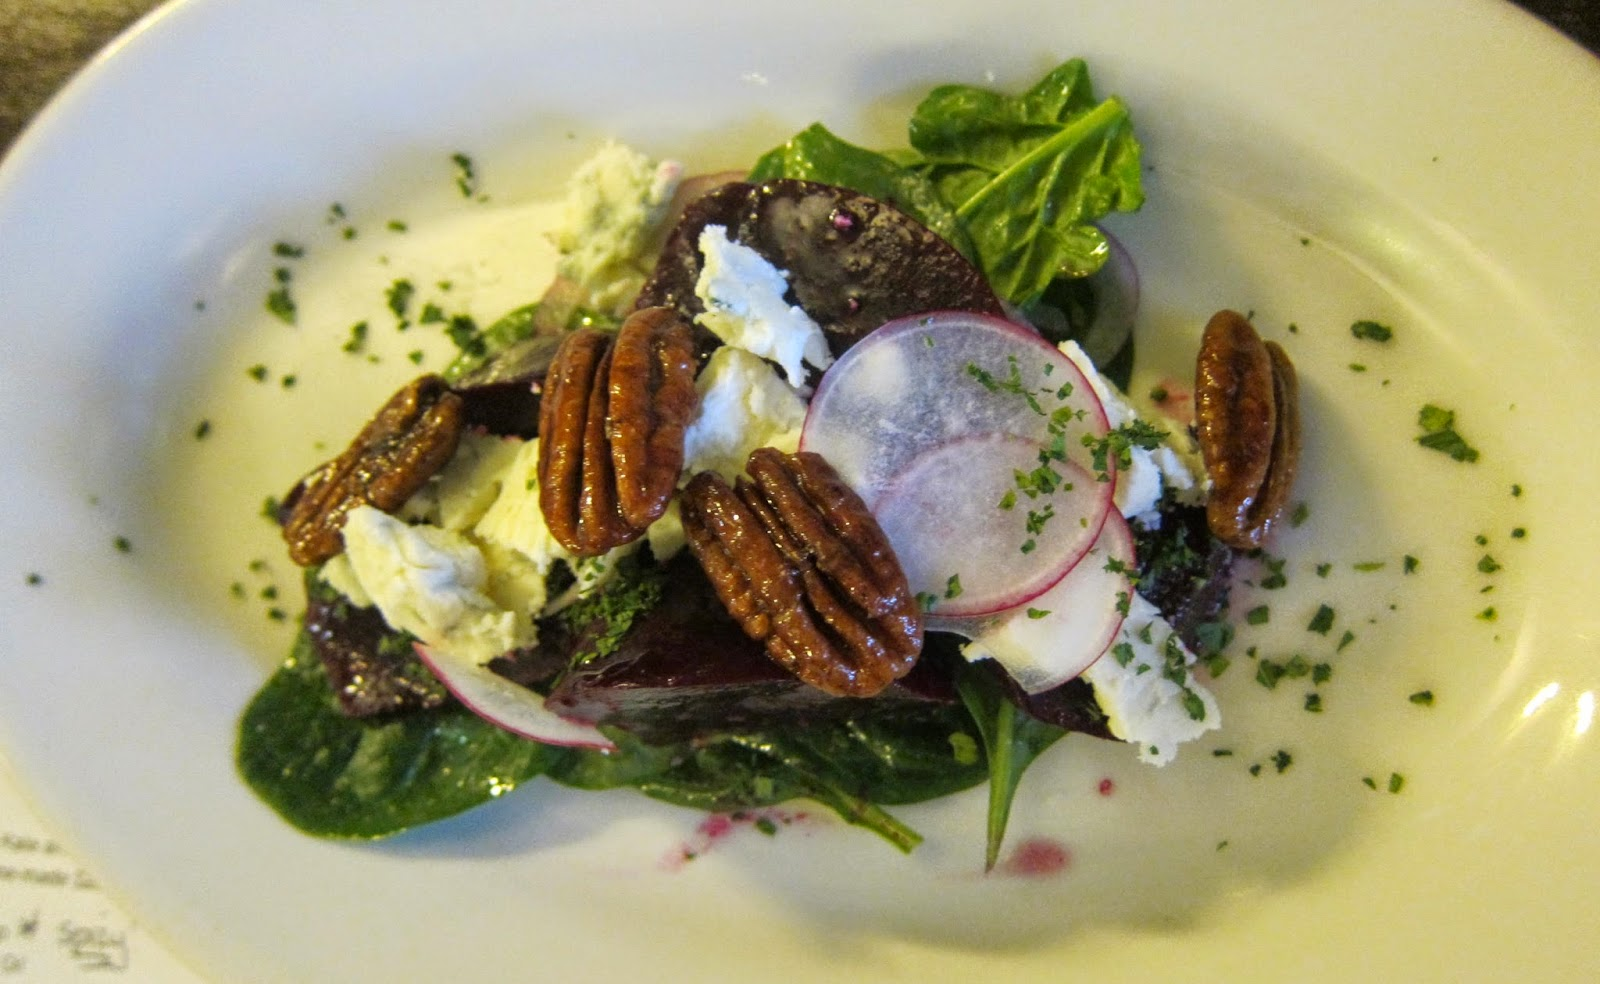 Roasted Beet & Spinach Salad at Kitchen on Common in Belmont, Mass. | The Economical Eater